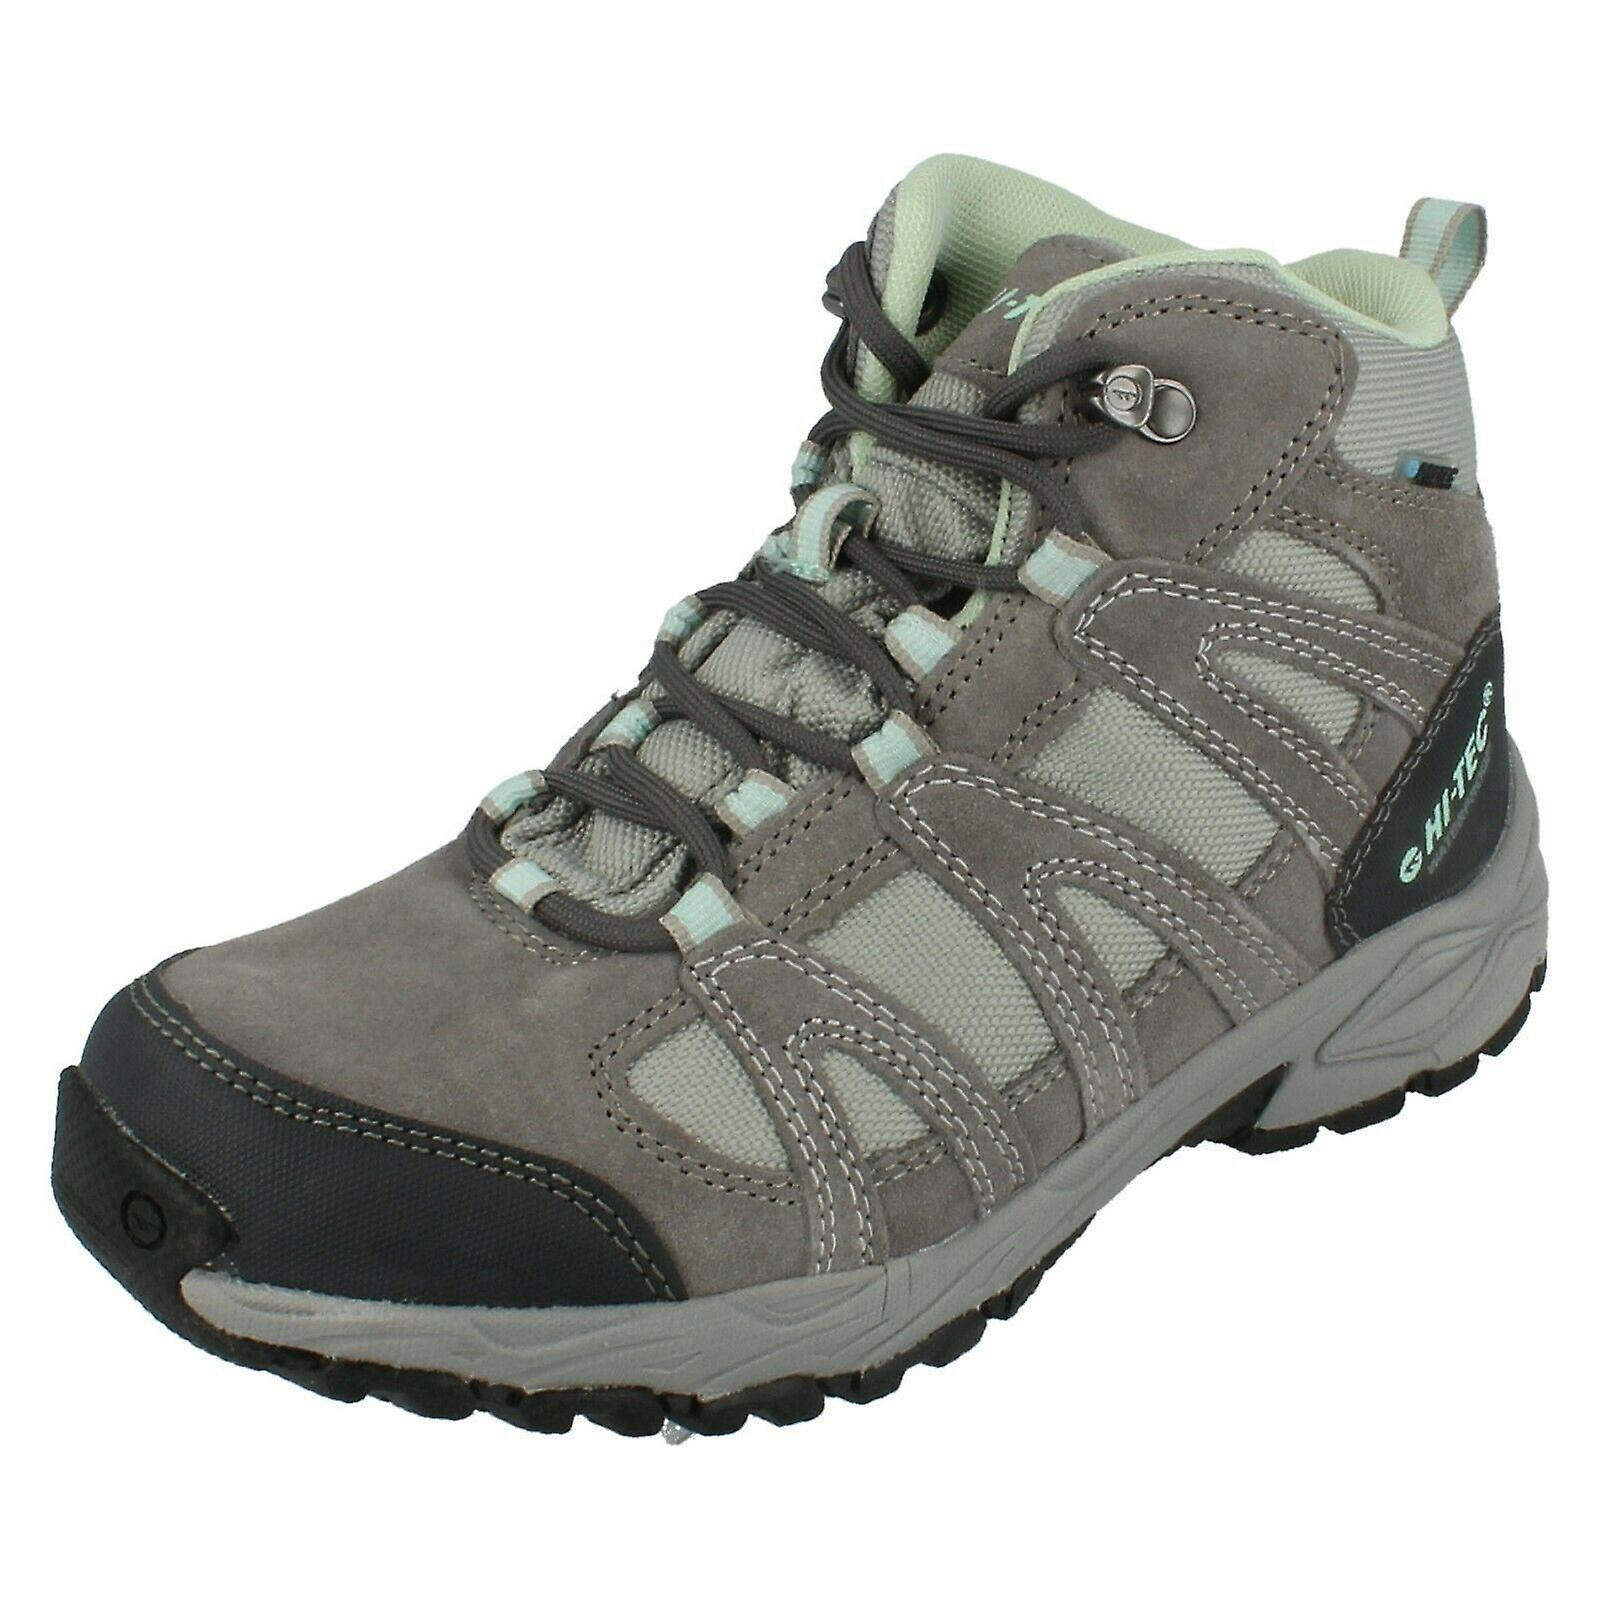 Ladies Hi Tec Waterproof Ankle Boots Alto II Mid Wp Womens 83TCr